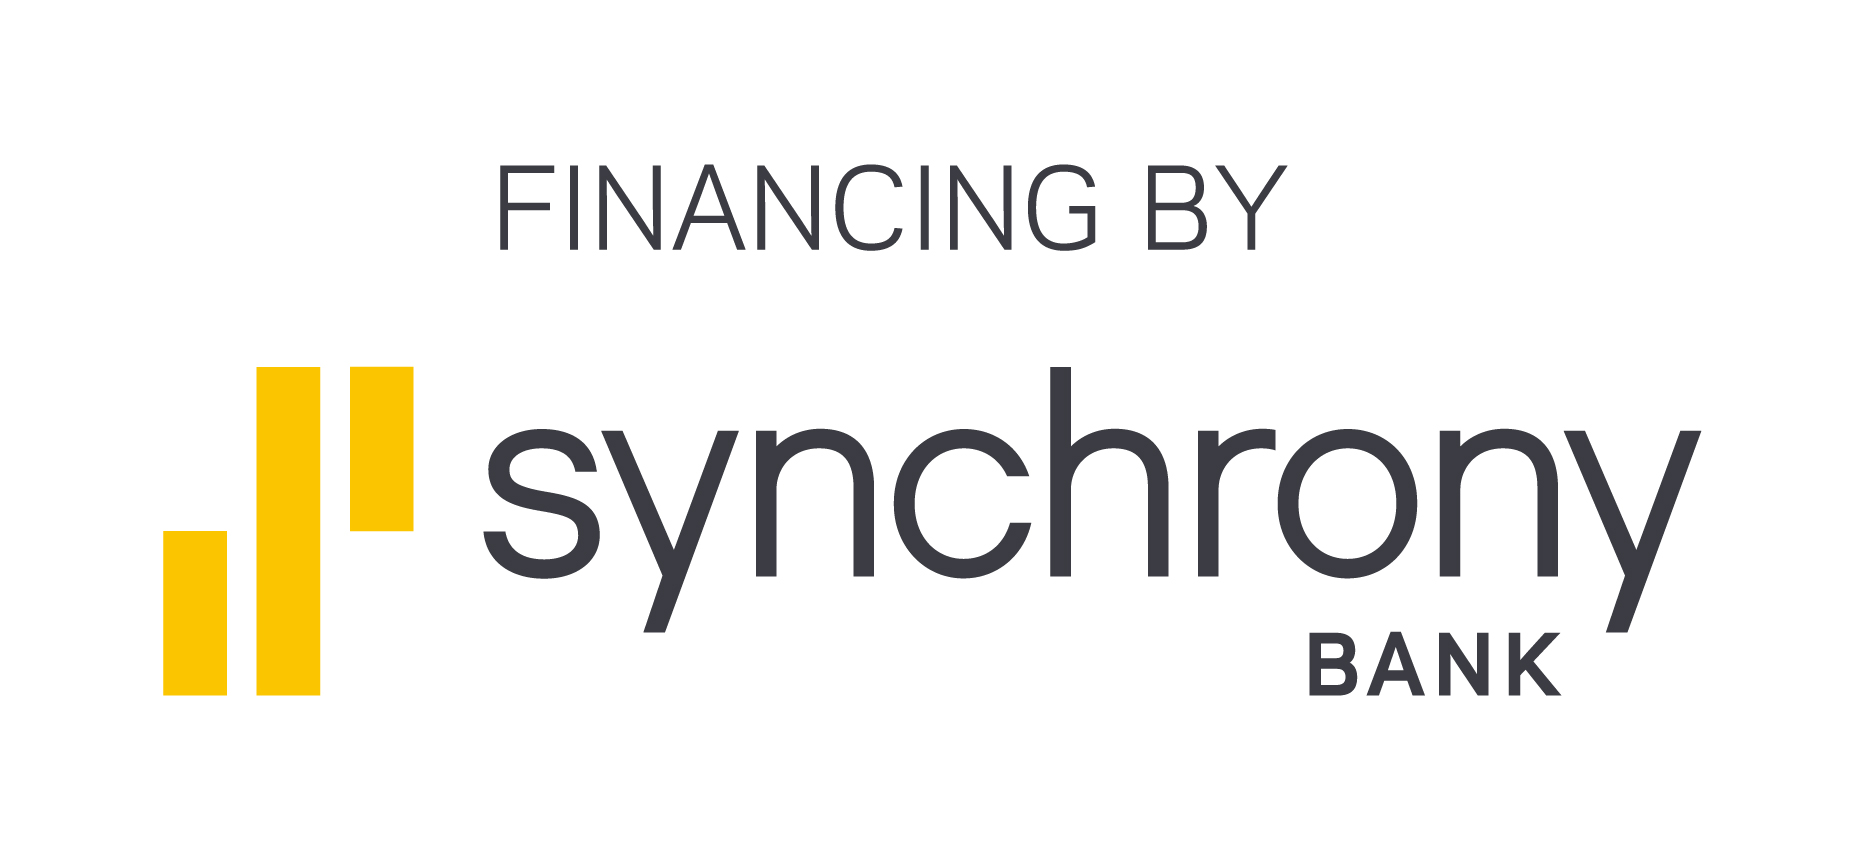 synchrony. financing by